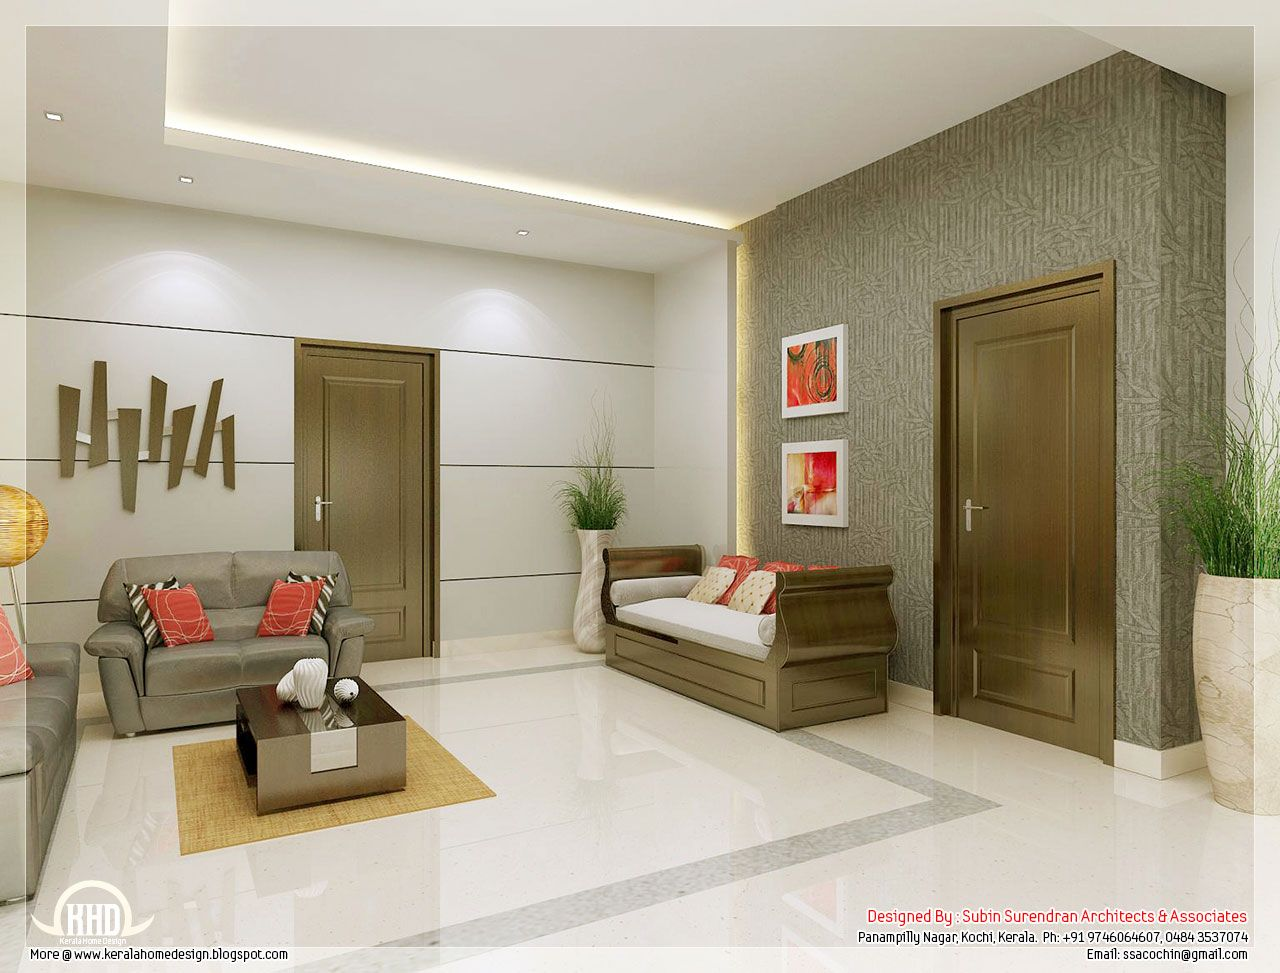 D'life home interiors ernakulam kochi kerala d home interior designs in kerala kerala home design and floor